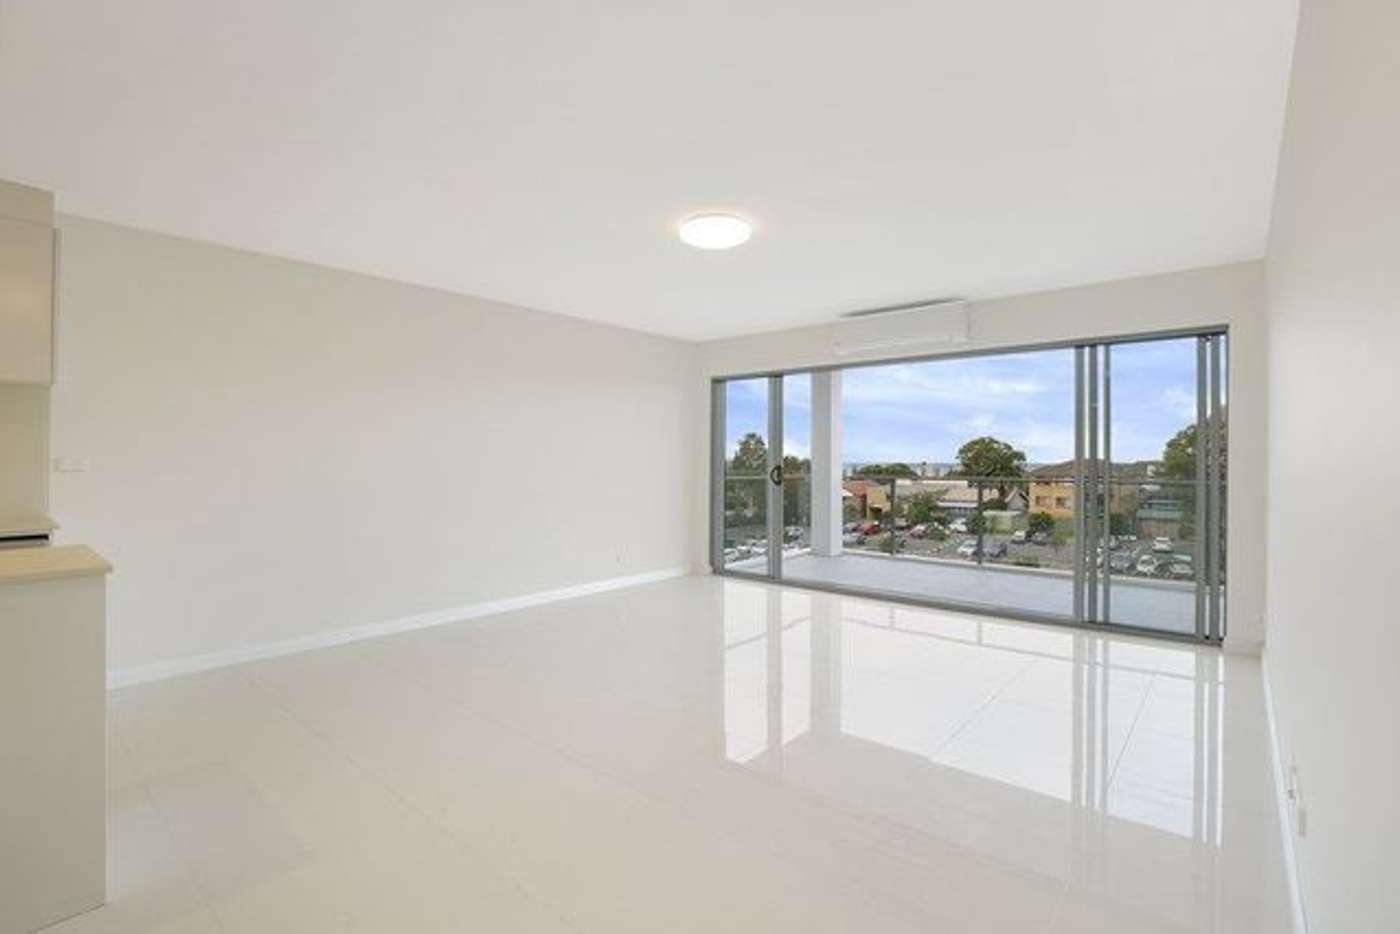 Main view of Homely unit listing, 10/10 Thomas Street, Wollongong NSW 2500